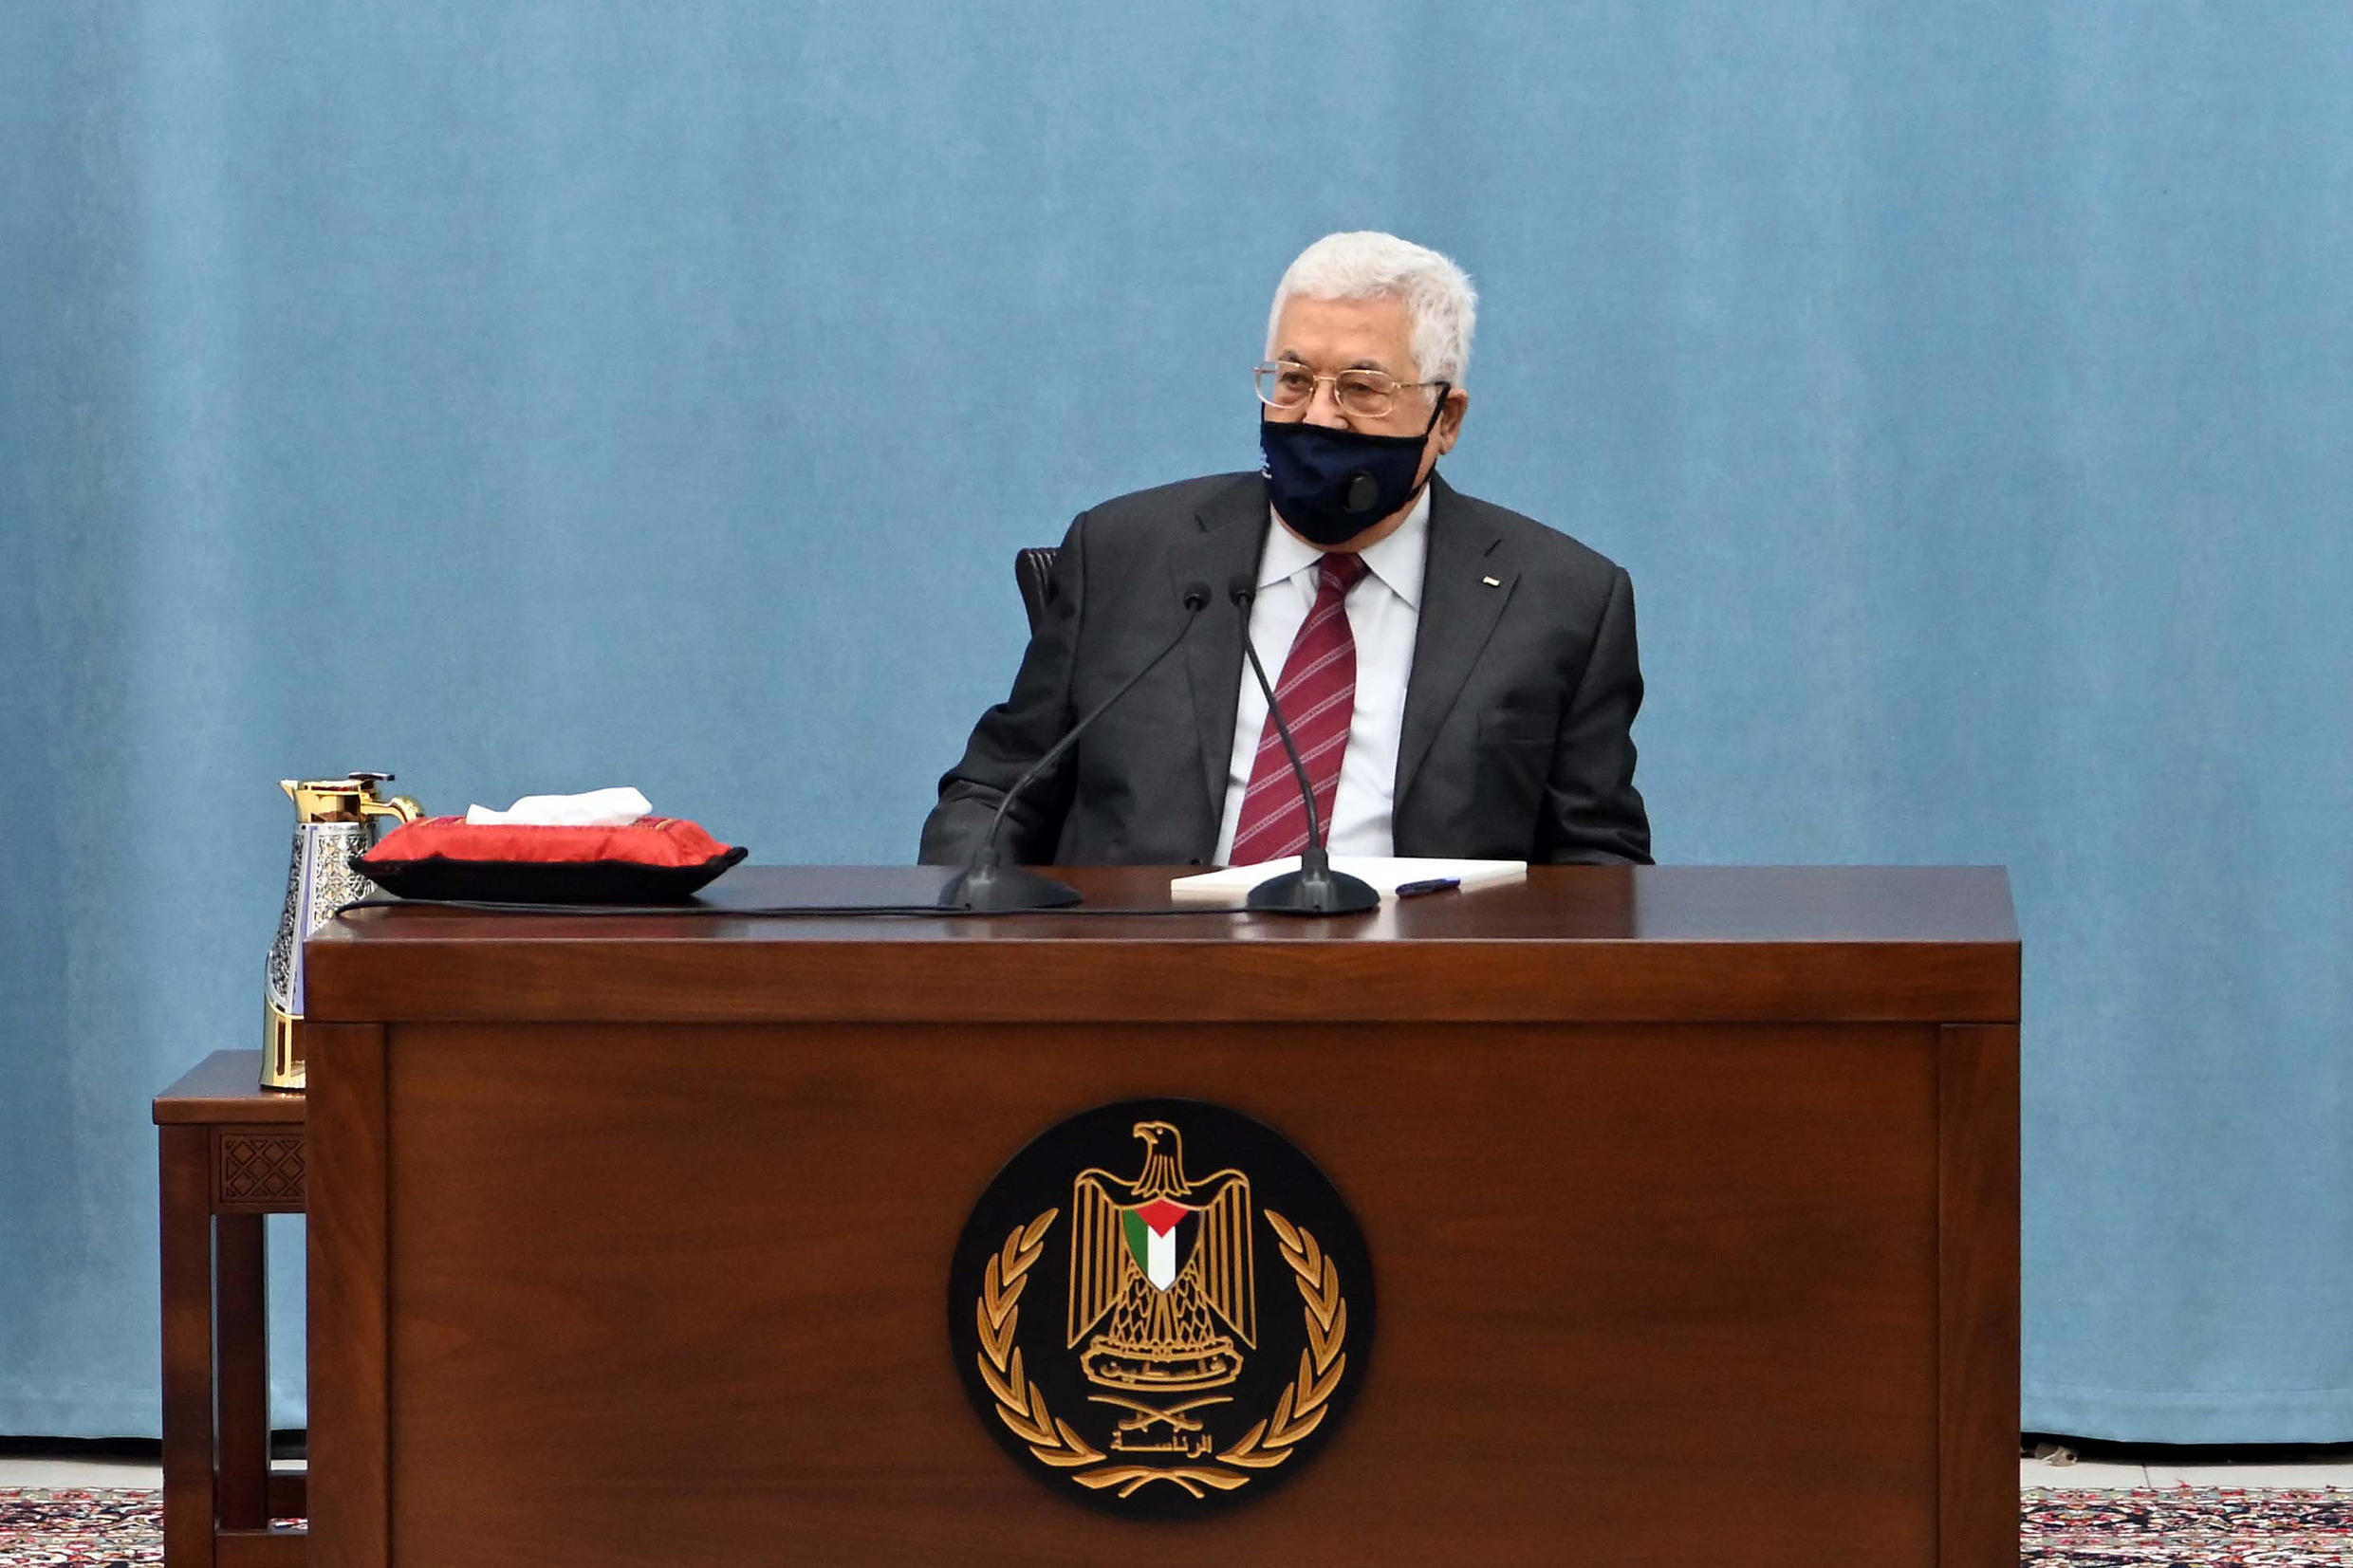 A handout picture provided by the Palestinian Authority's press office (PPO) on June 19, 2020, shows Palestinian president Mahmoud Abbas.